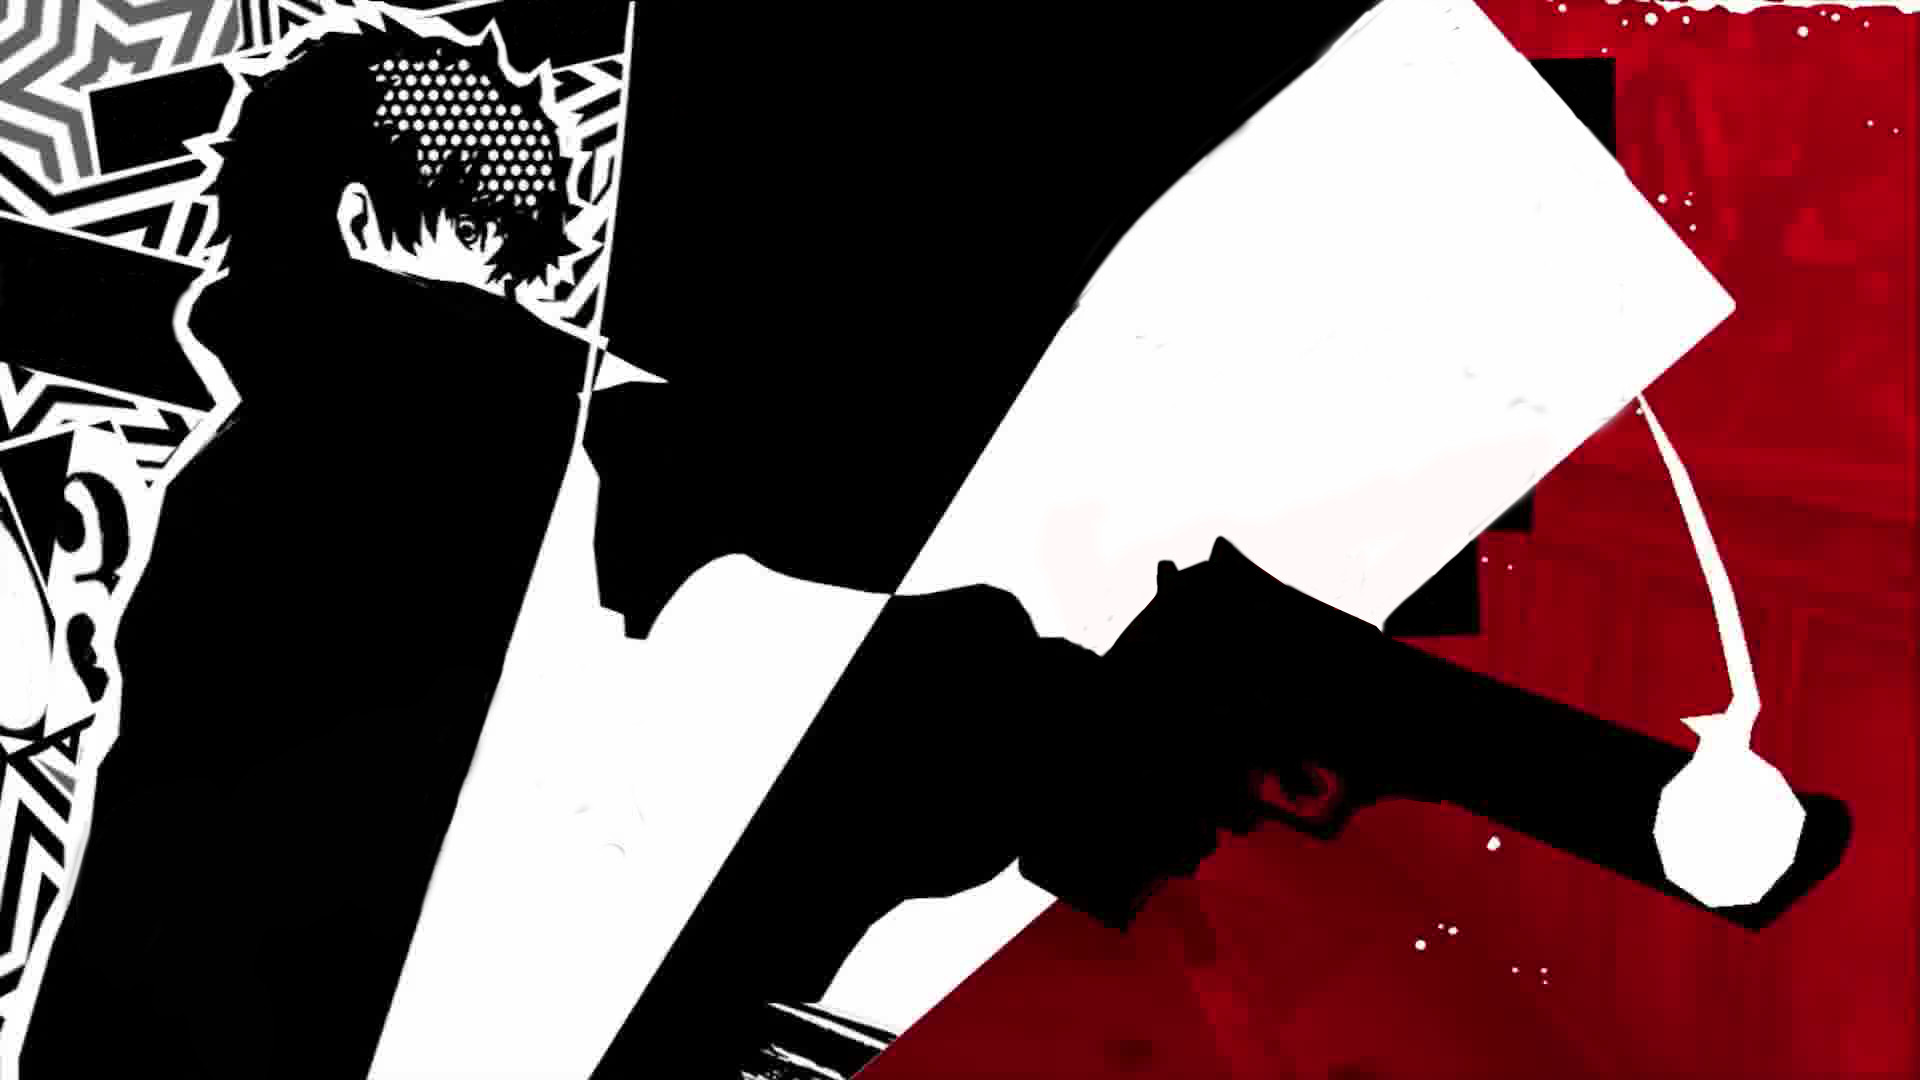 PERSONA Protagonist rpg anime manga dungeon simulation five 1920×1080  Persona 5 Wallpapers (34 Wallpapers)   Adorable Wallpapers   Desktop    Pinterest …